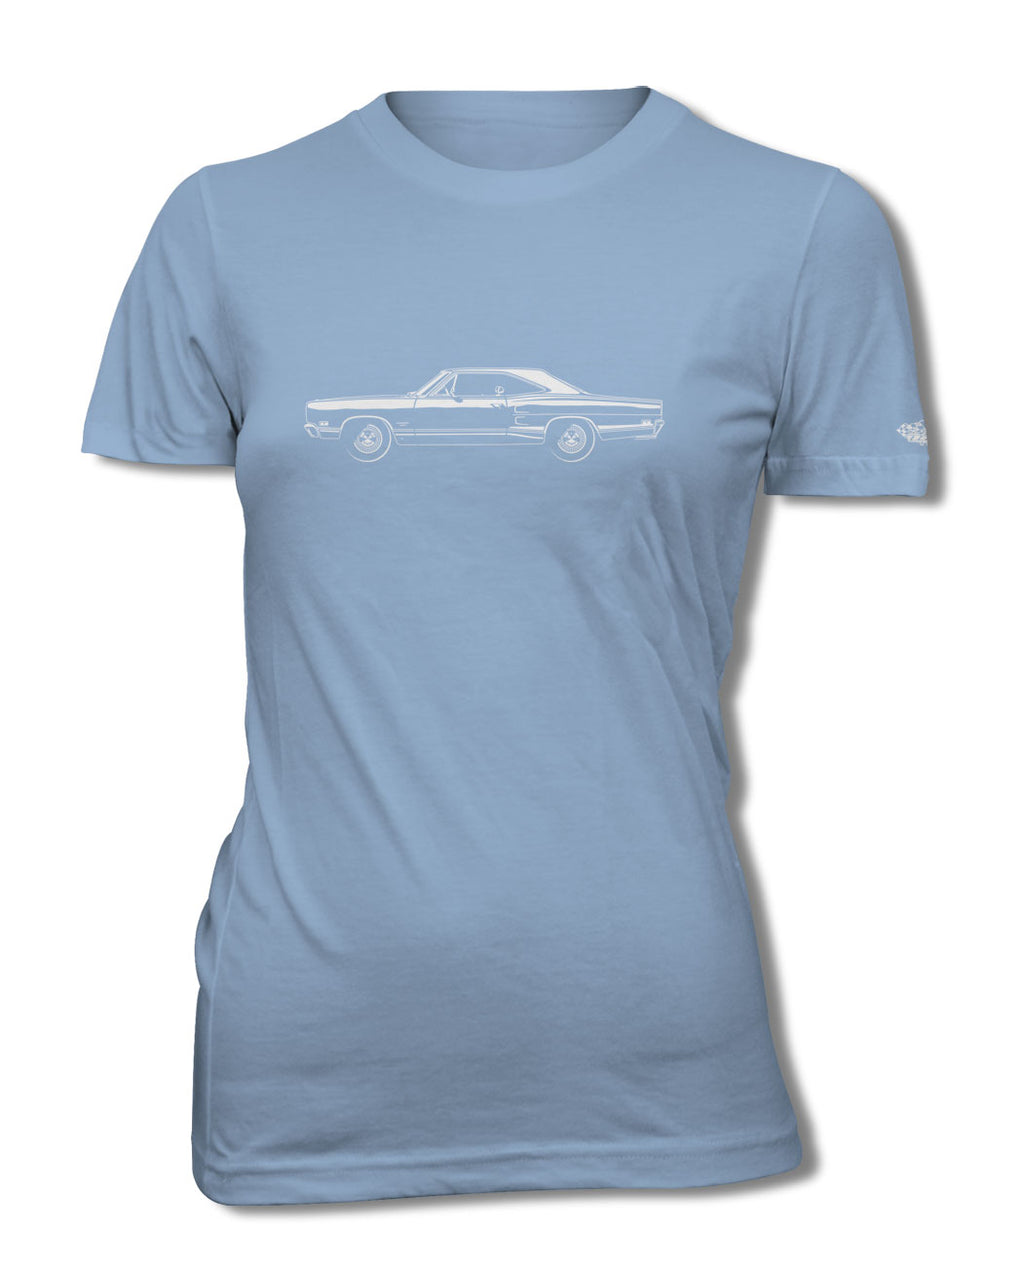 1969 Dodge Coronet 440 Coupe T-Shirt - Women - Side View